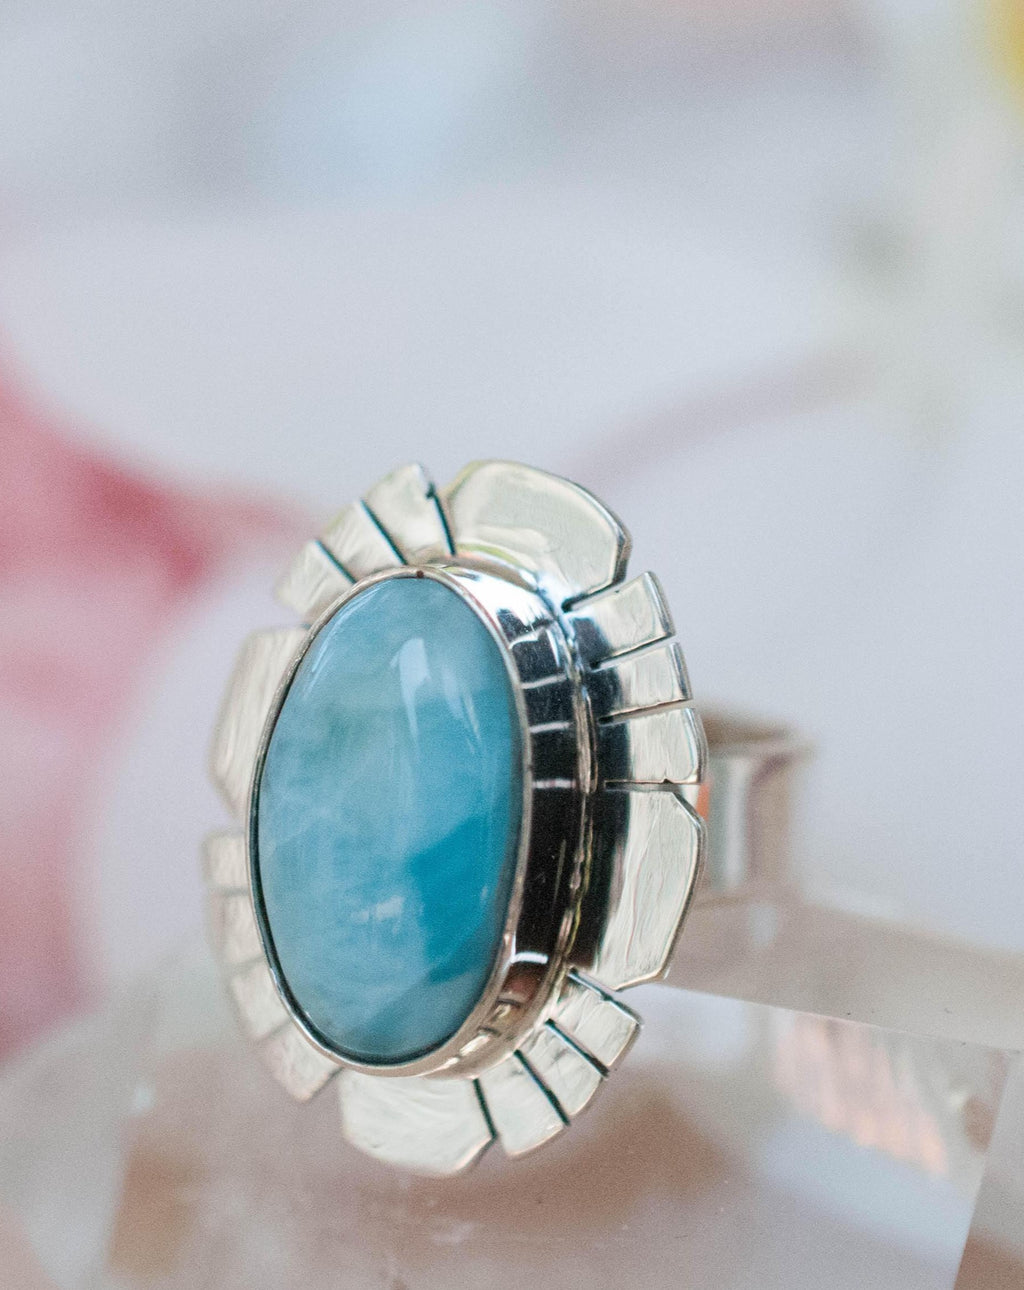 Larimar Ring * Sterling Silver 925 * Gemstone * Natural * Statement * Handmade * Semi Precious Stone * Bohemian * Chic * Boho * BJR193